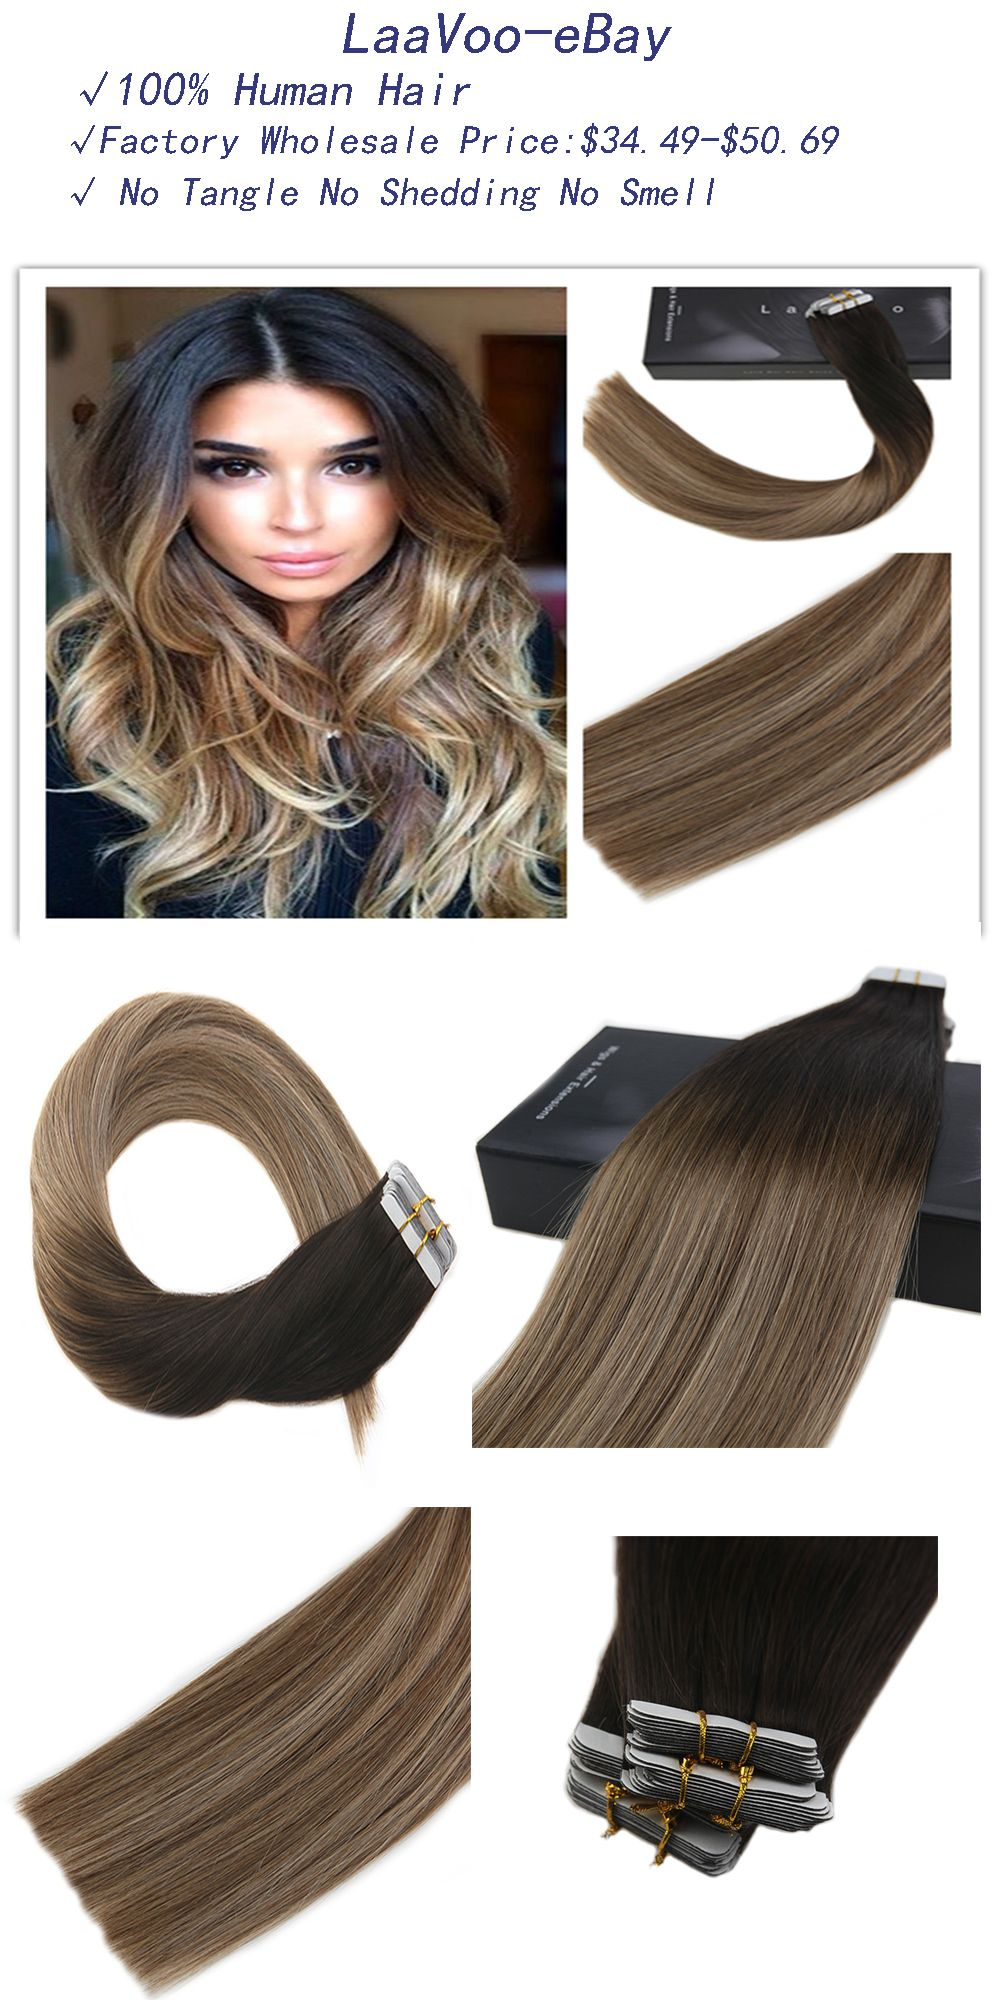 50g Tape In Skin Weft Human Hair Extensions Balayage Ombre Color